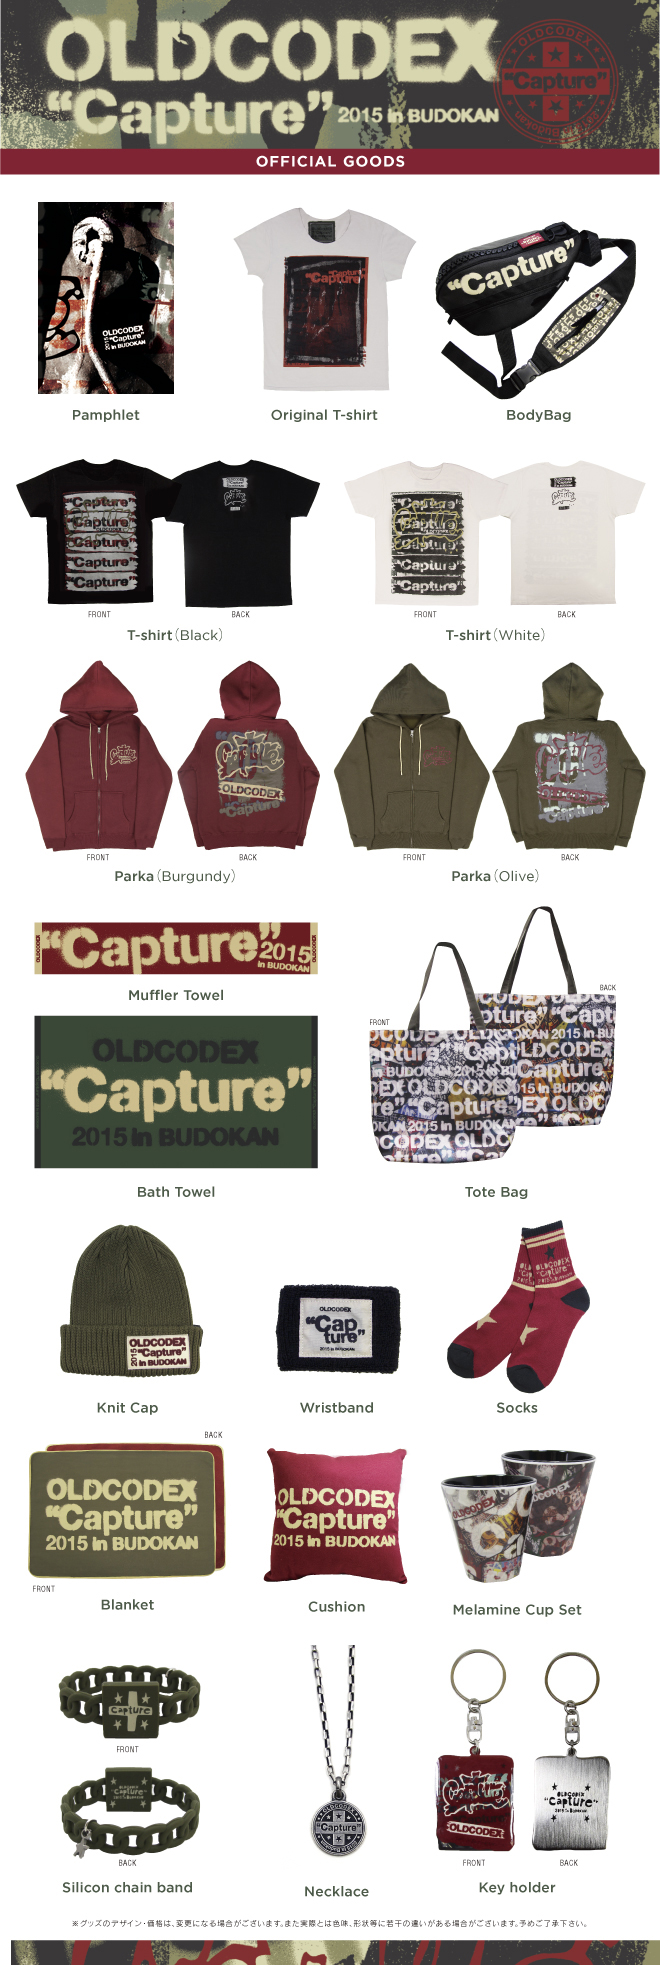 "OLDCODEX ""Capture"" 2015 in Budokan OFFICIAL GOODS"